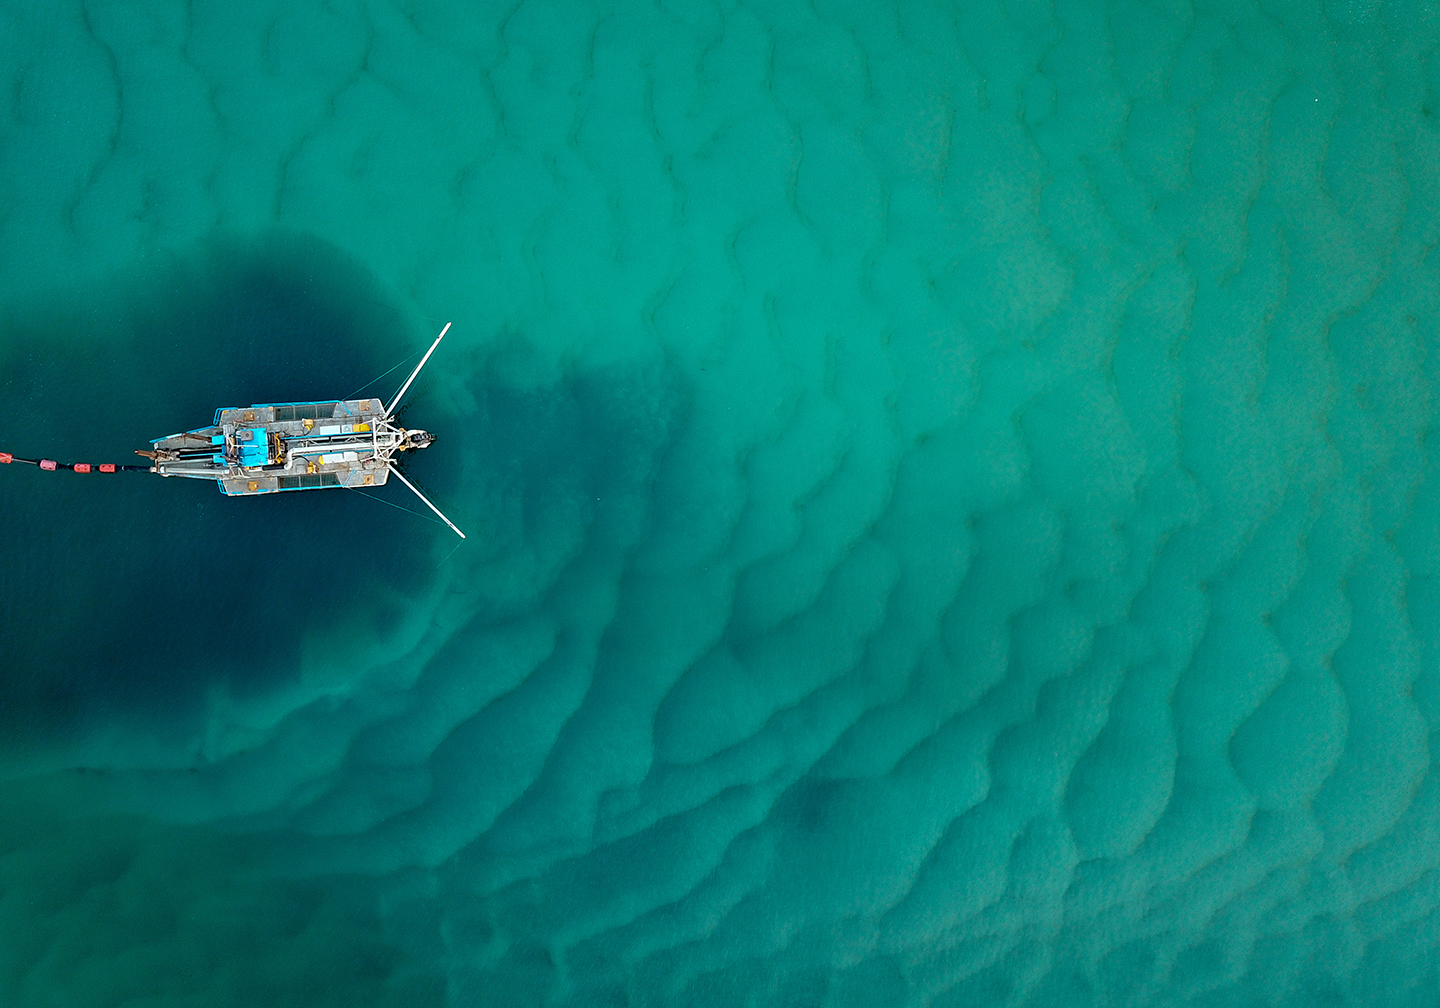 A view from above of a bottom trawler in the ocean. The dark water under the boat shows the destruction of the seafloor.